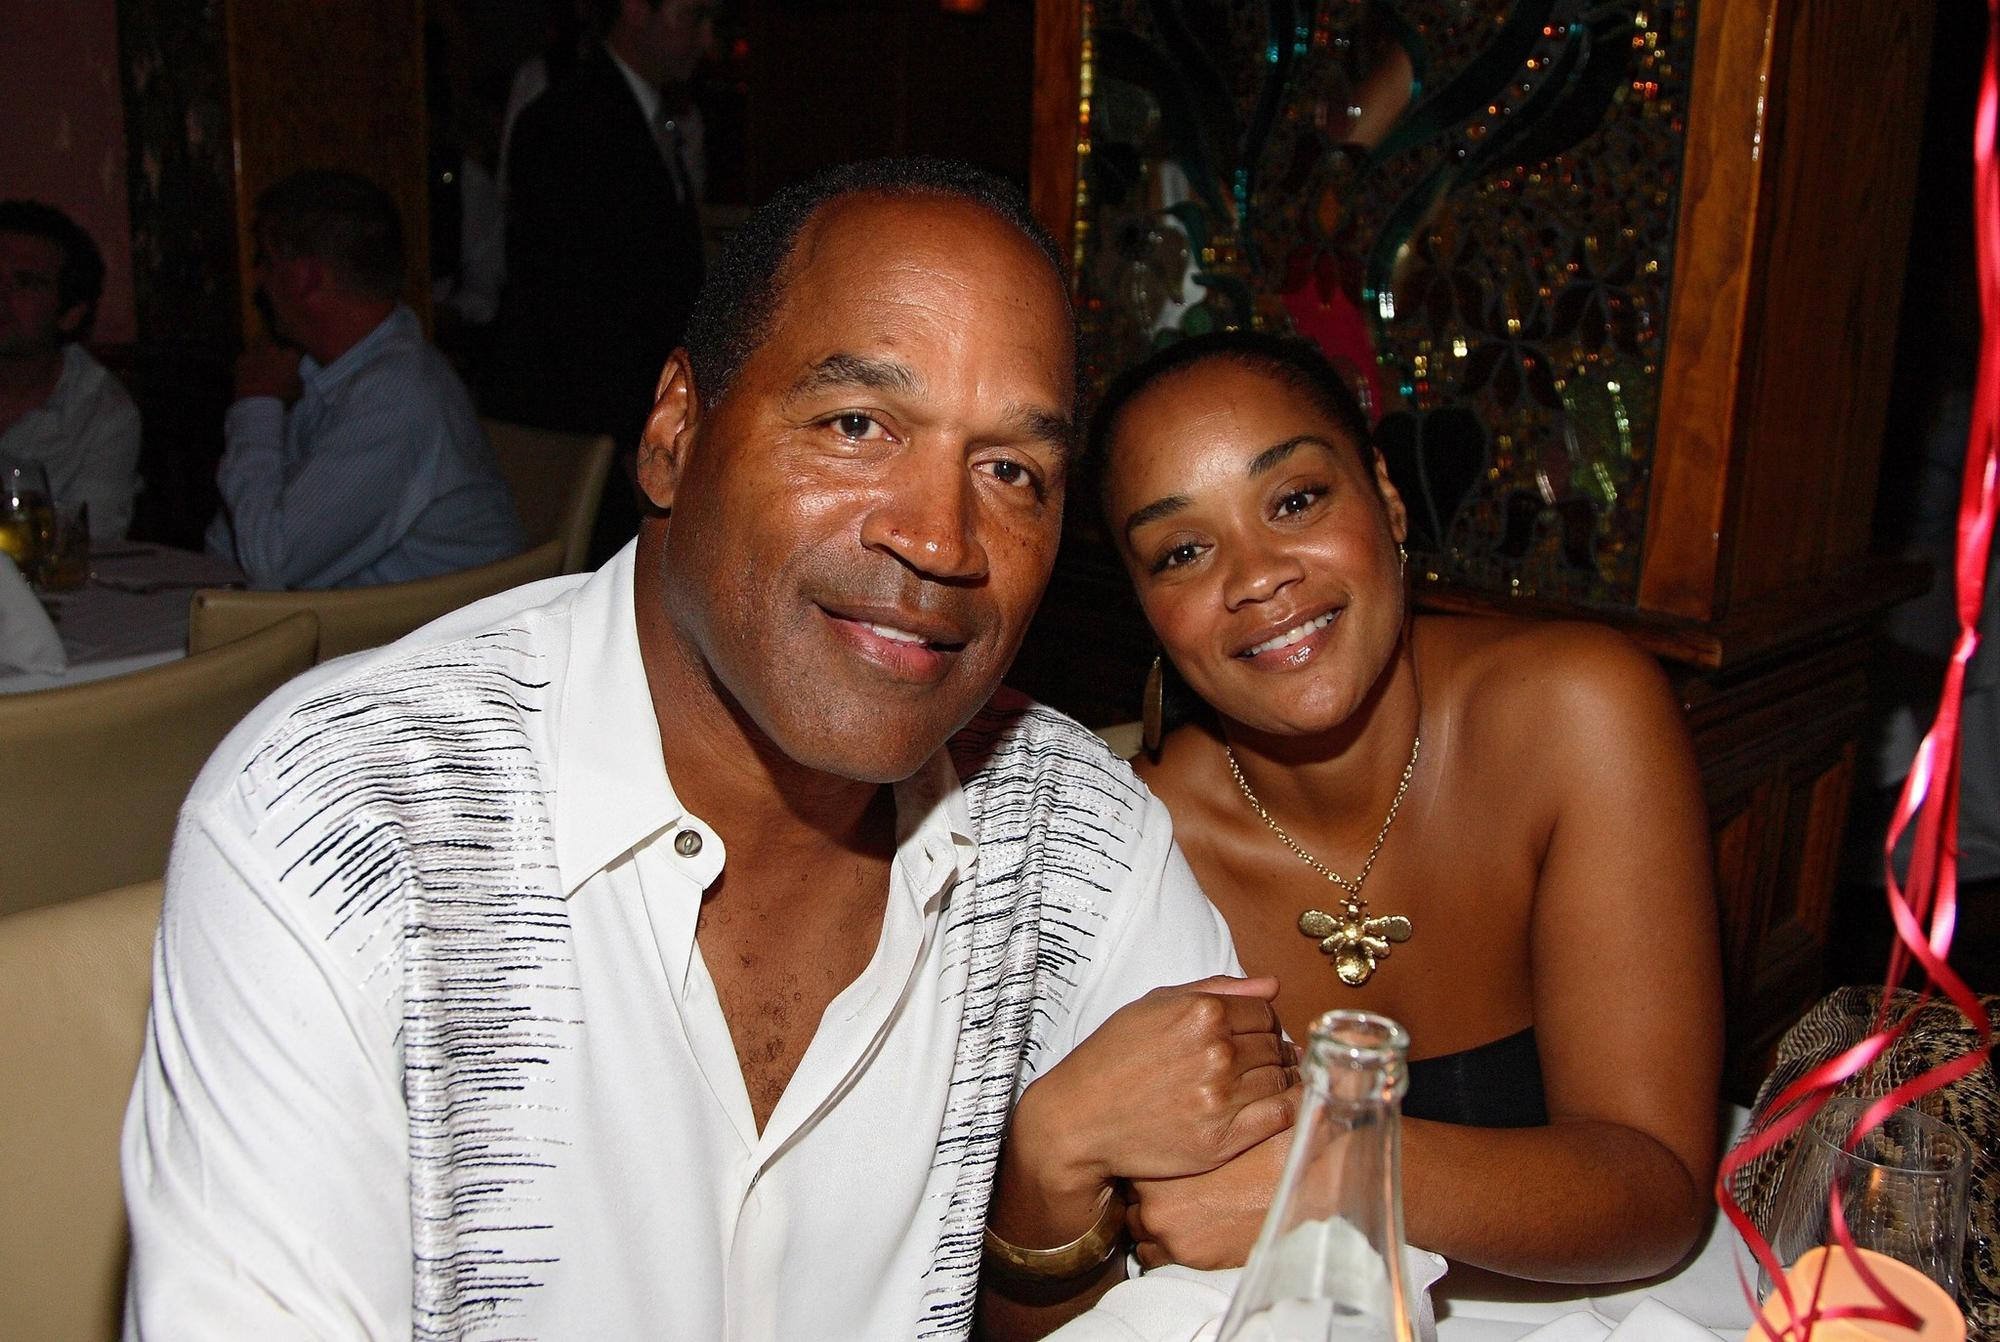 O.J. Simpson and daughter Arnelle at a restaurant in Miami Beach in 2007.